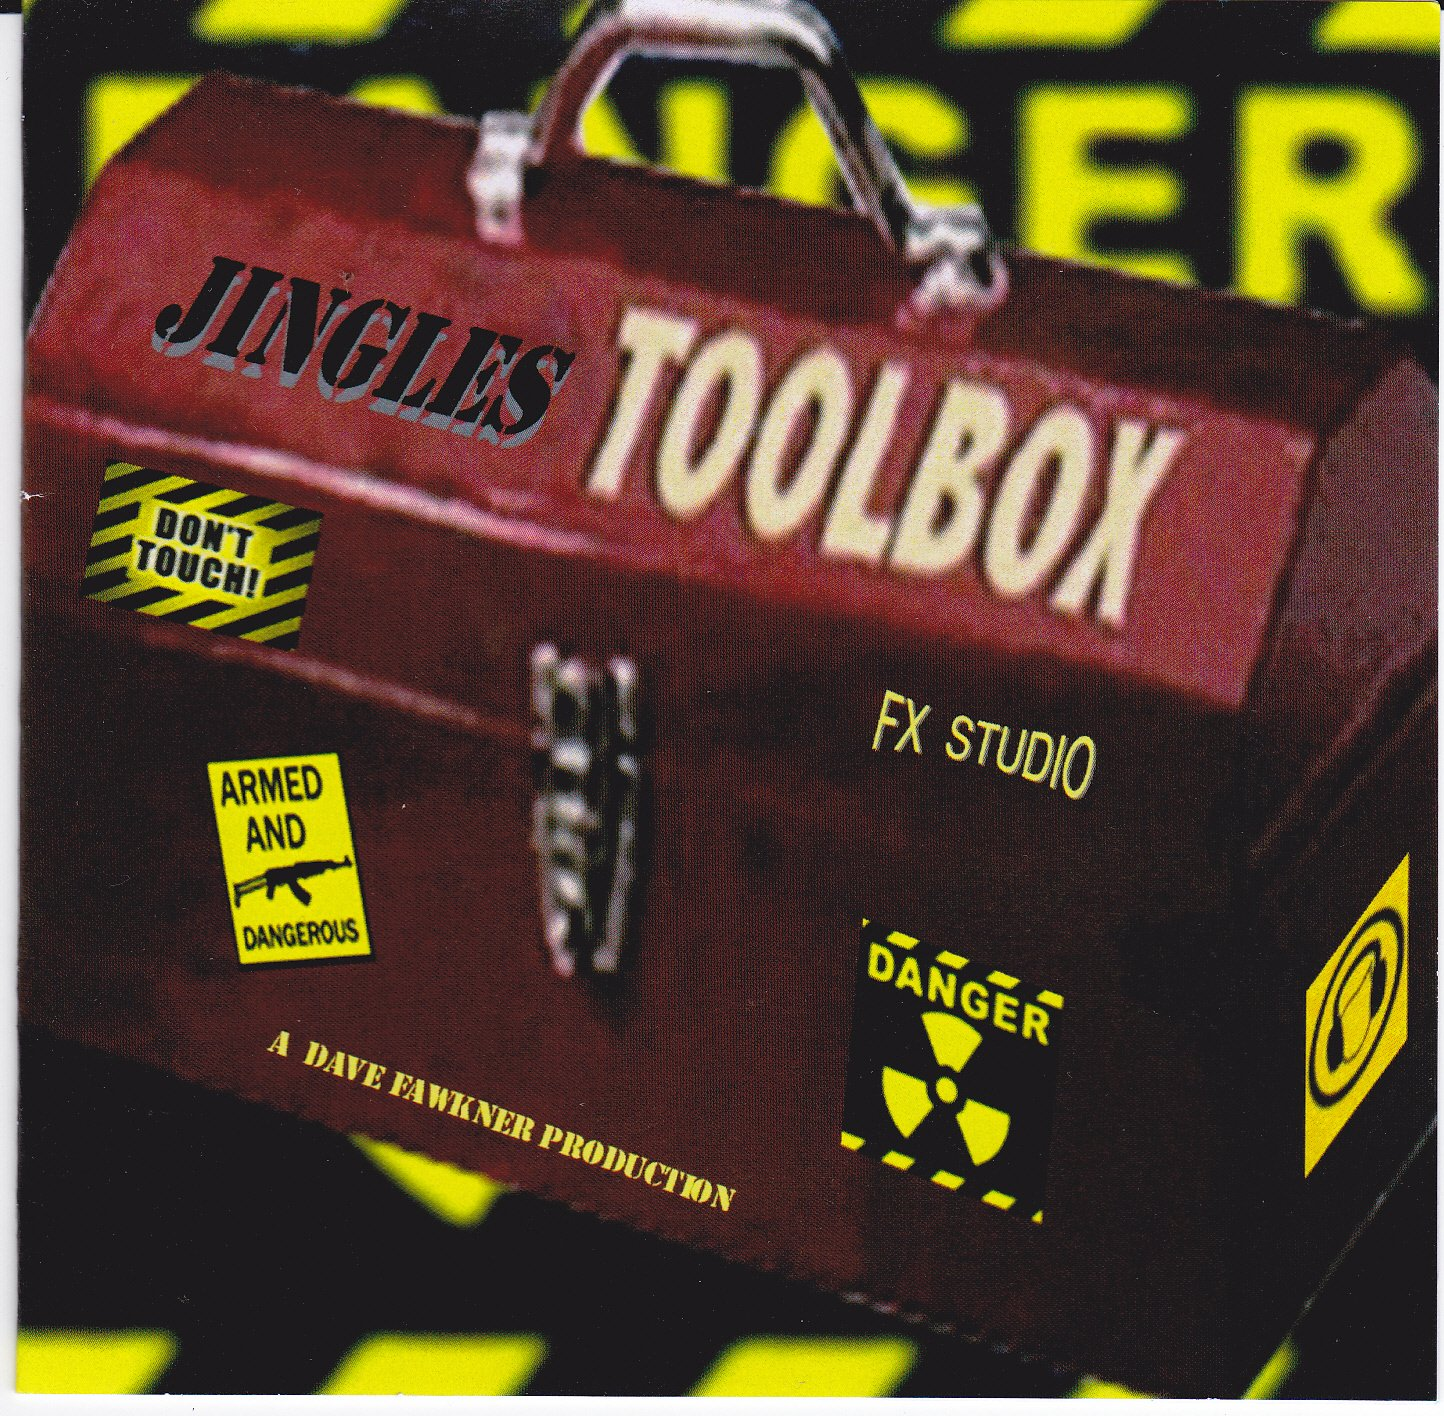 THE JINGLES TOOLBOX CD,PROFESSIONAL AUDIO FOR DJ / RADIO